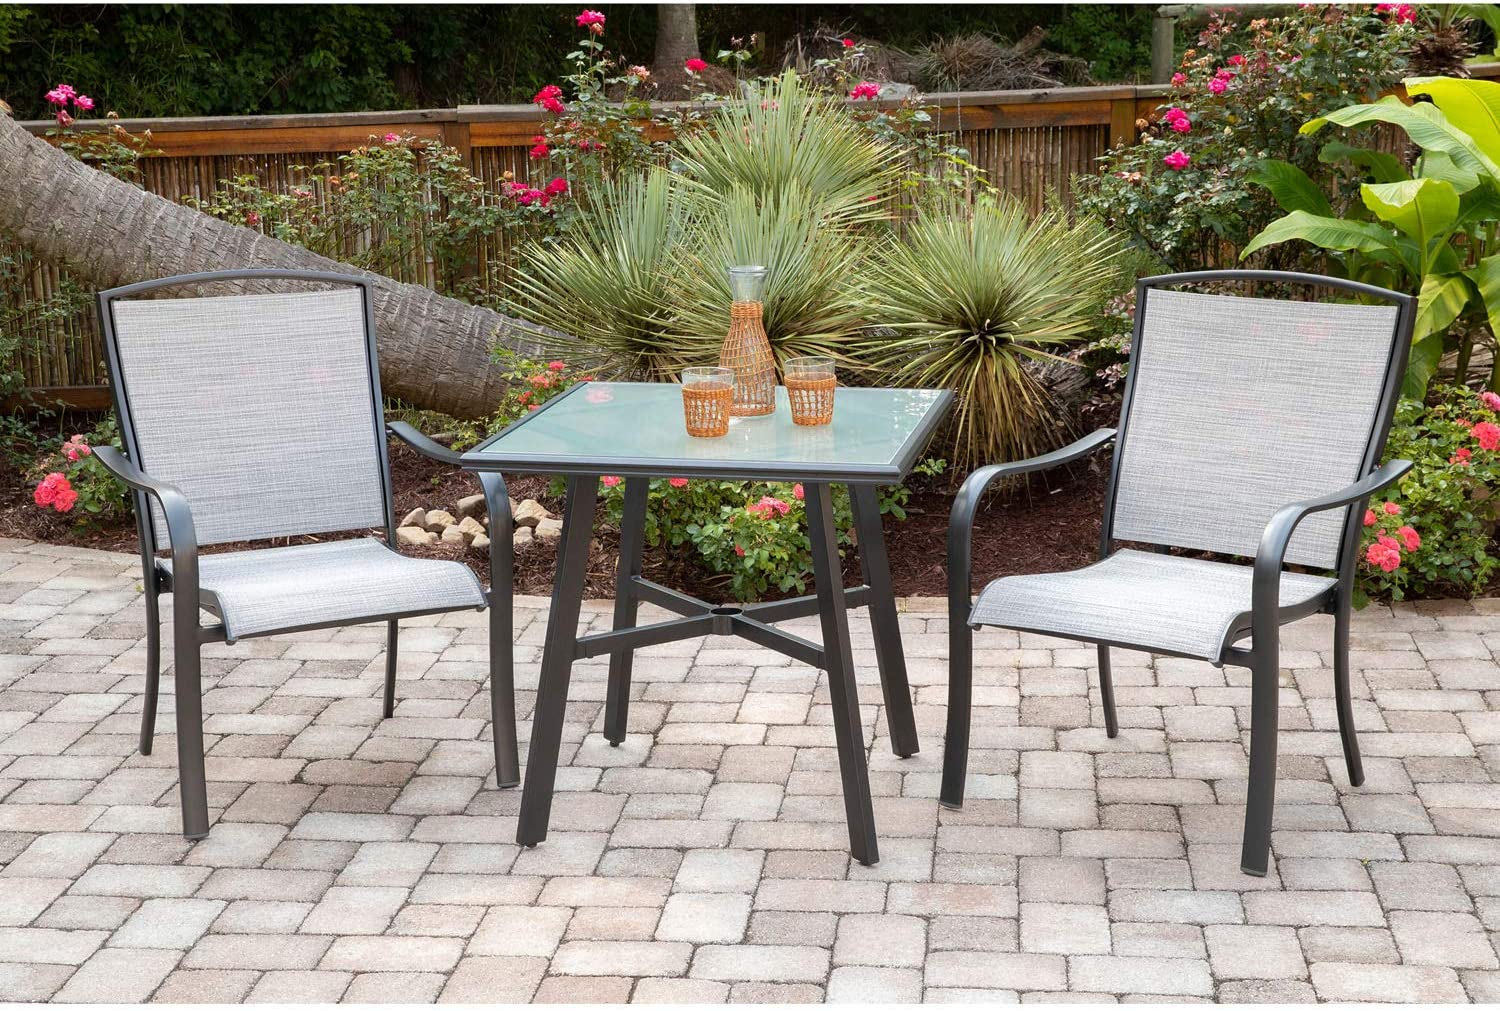 Hanover FOXDN3PCG-GRY Foxhill 3-Piece Grade Bistro Set with 2 Sling Dining Chairs Commercial Outdoor Furniture, Gray/Gunmetal